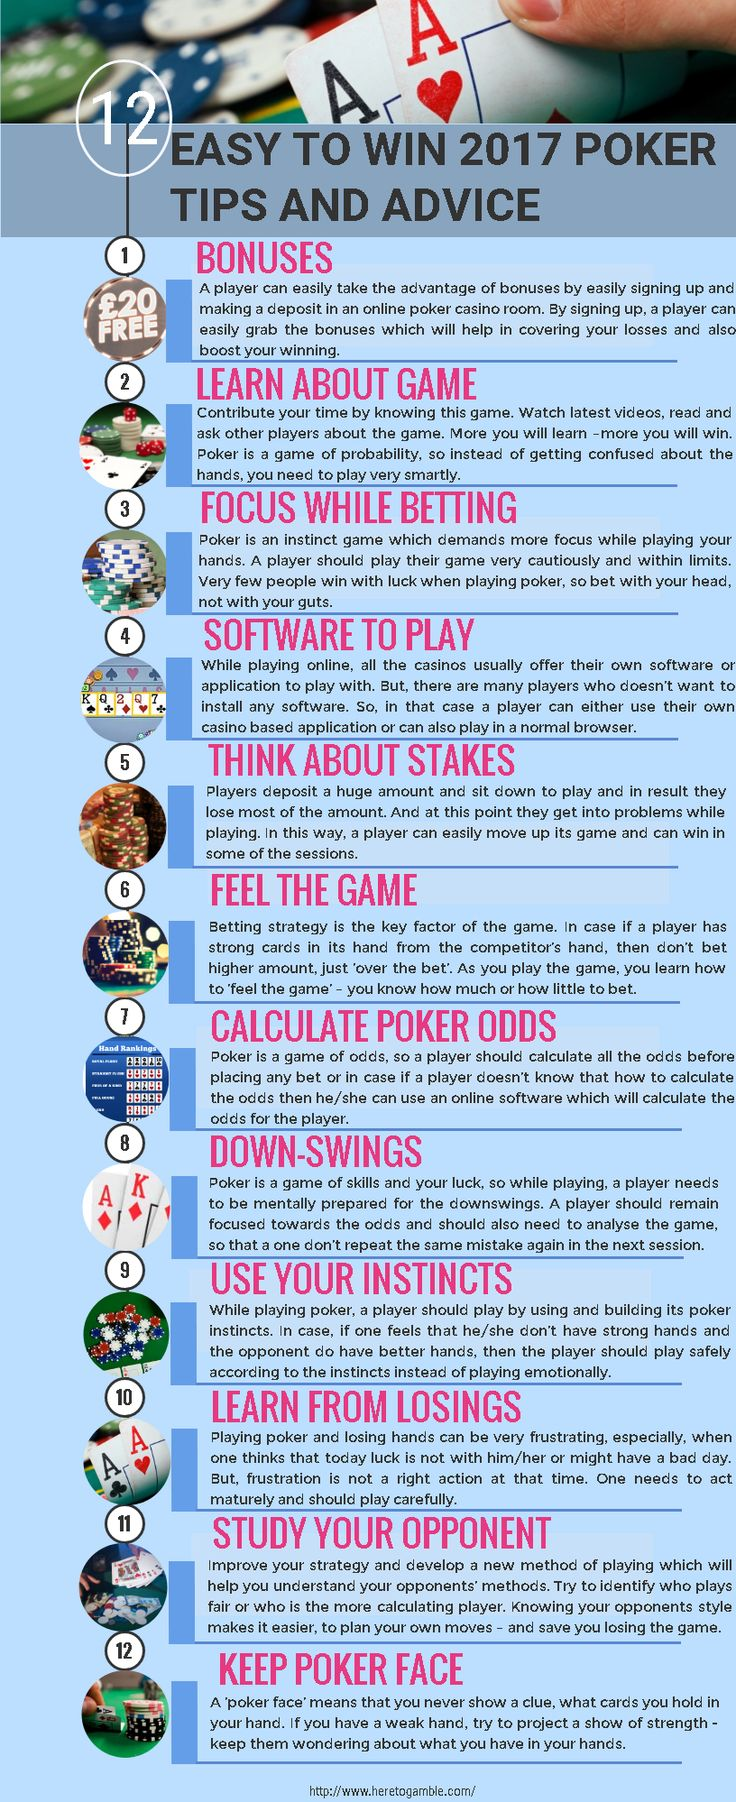 List of Card Games - How to Play Casino Card Games